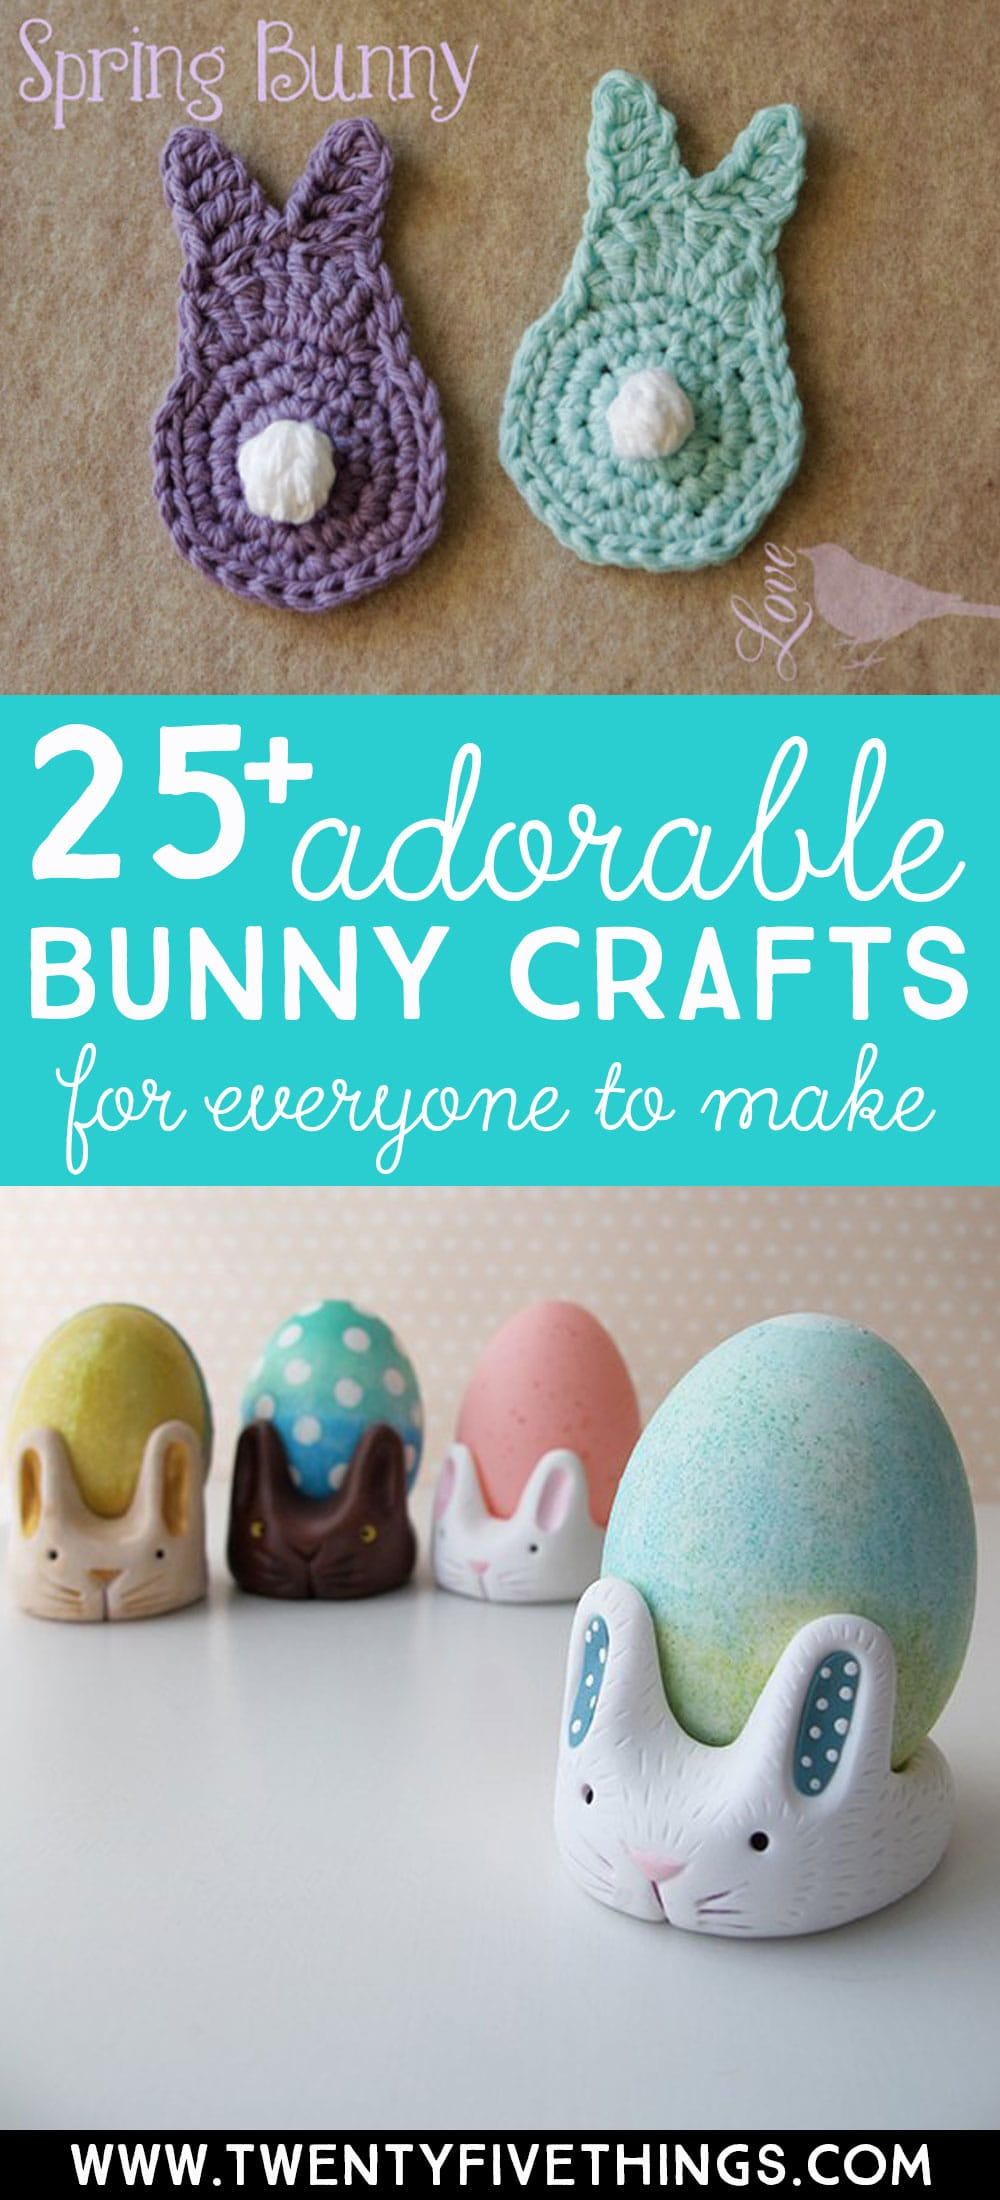 bunny craft ideas for spring: 25 fun and adorable ways to make a bunny. Easy and simple bunny craft ideas for everyone.